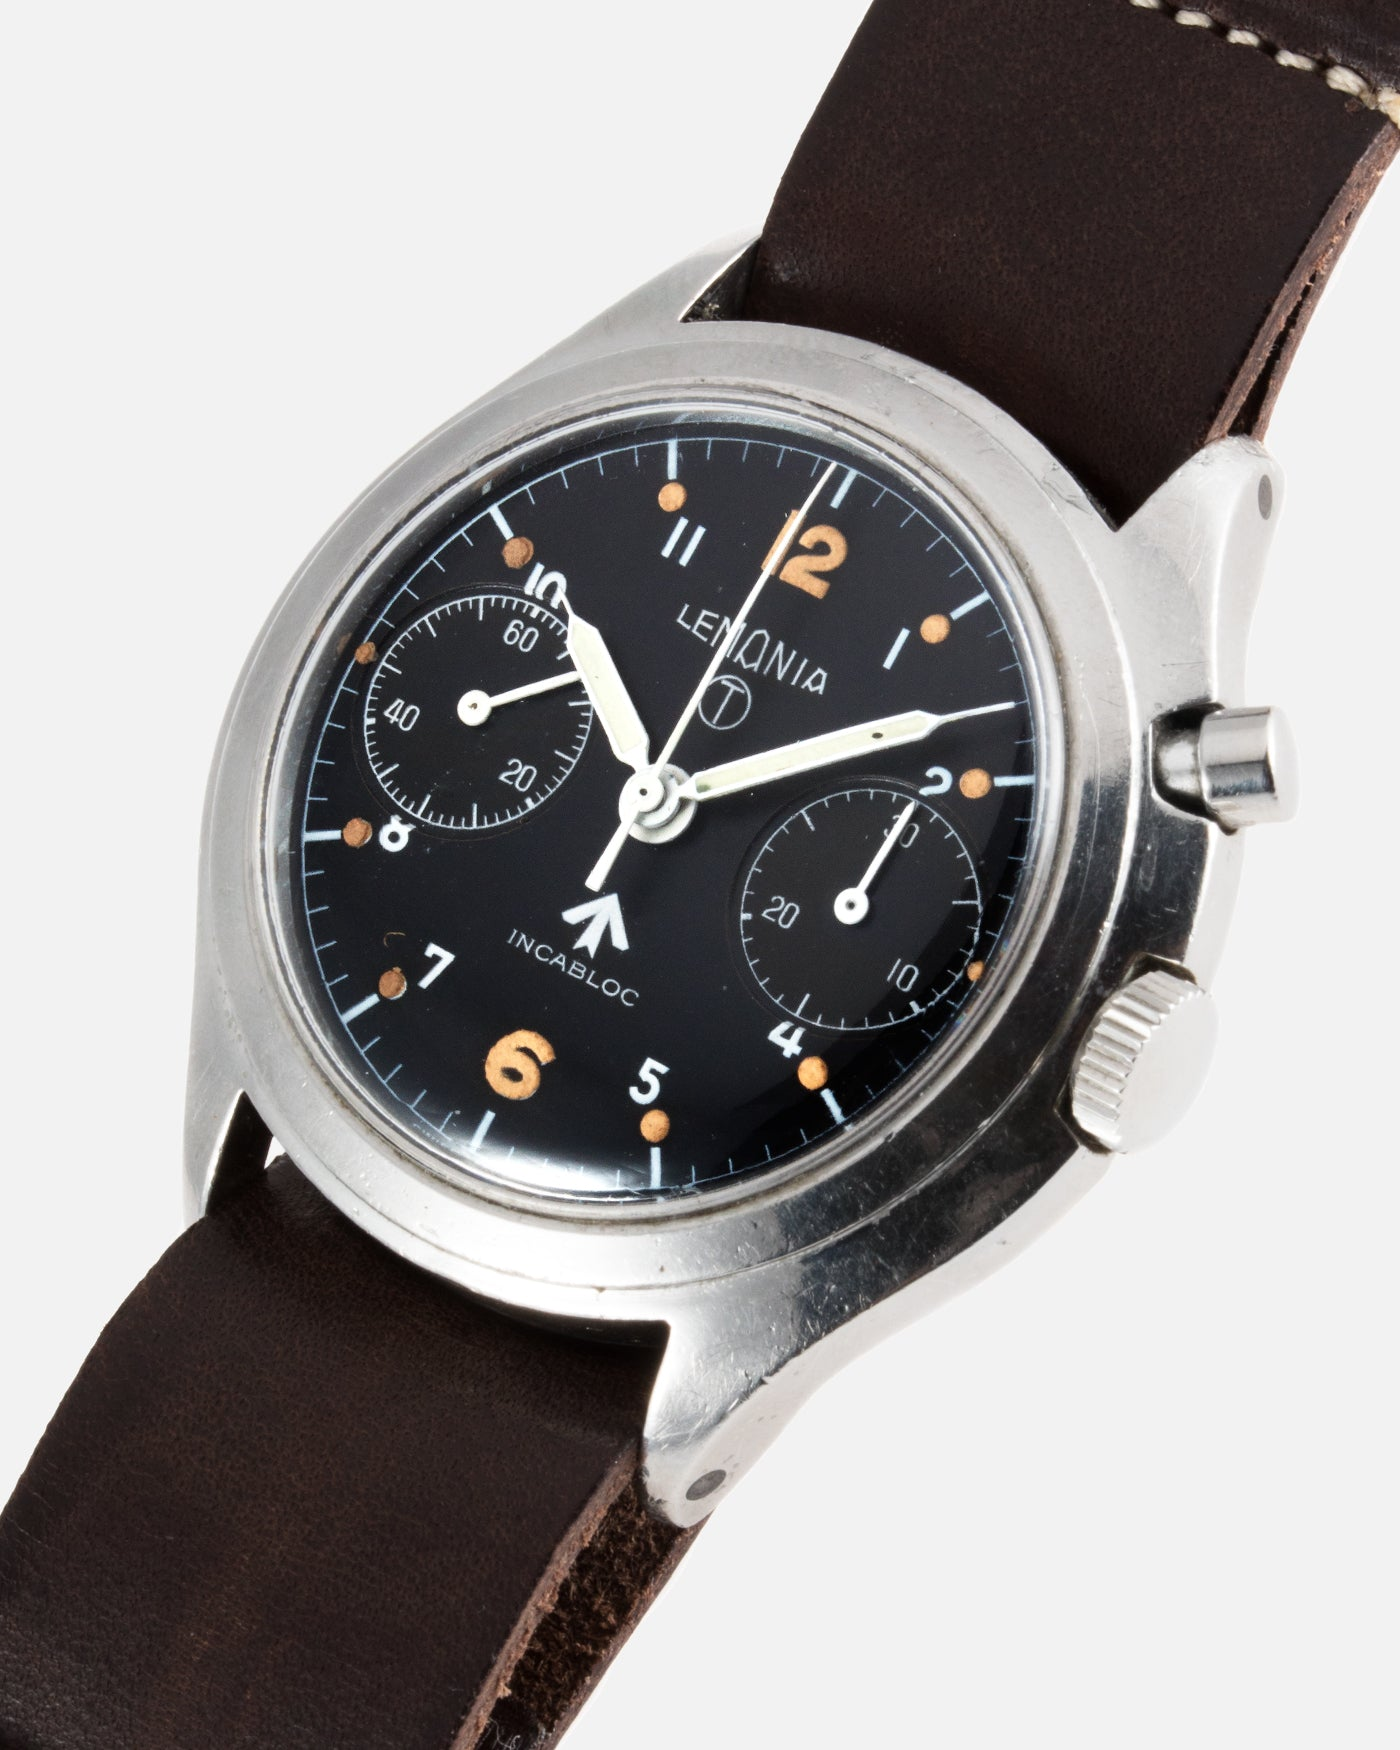 Lemania Royal Air Force Monopusher Series 3 Military Watch | S.Song Vintage Watches For Sale